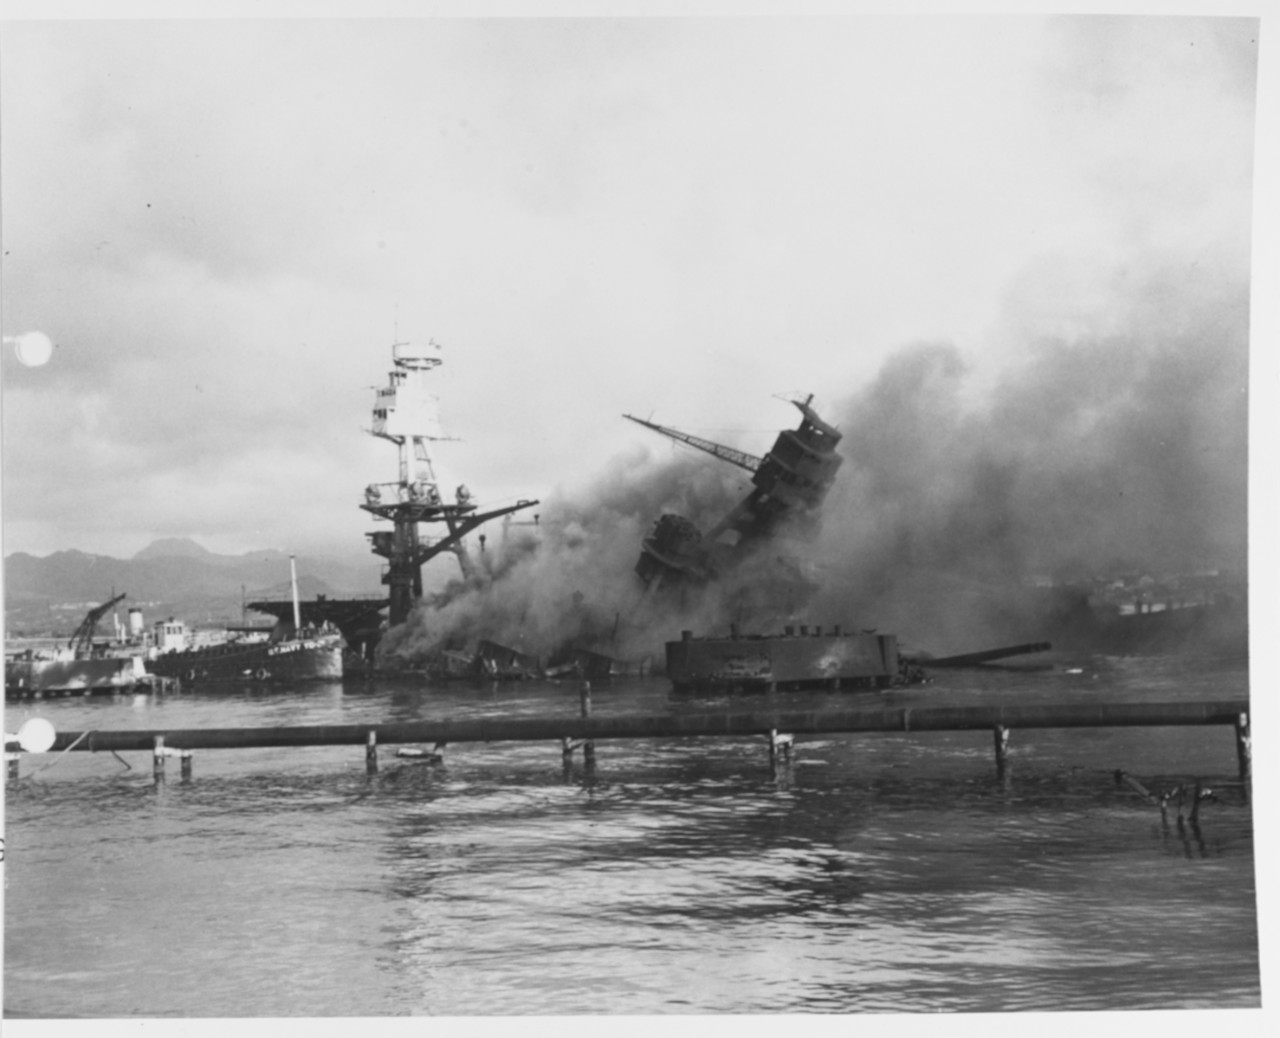 USS Arizona (BB-39) sunk and burning at Pearl Harbor, Hawaii, on 7 December 1941, after her forward magazines exploded when she was hit by Japanese bombs. YG-21 is alongside, helping to fight the fires. (NH 83062)